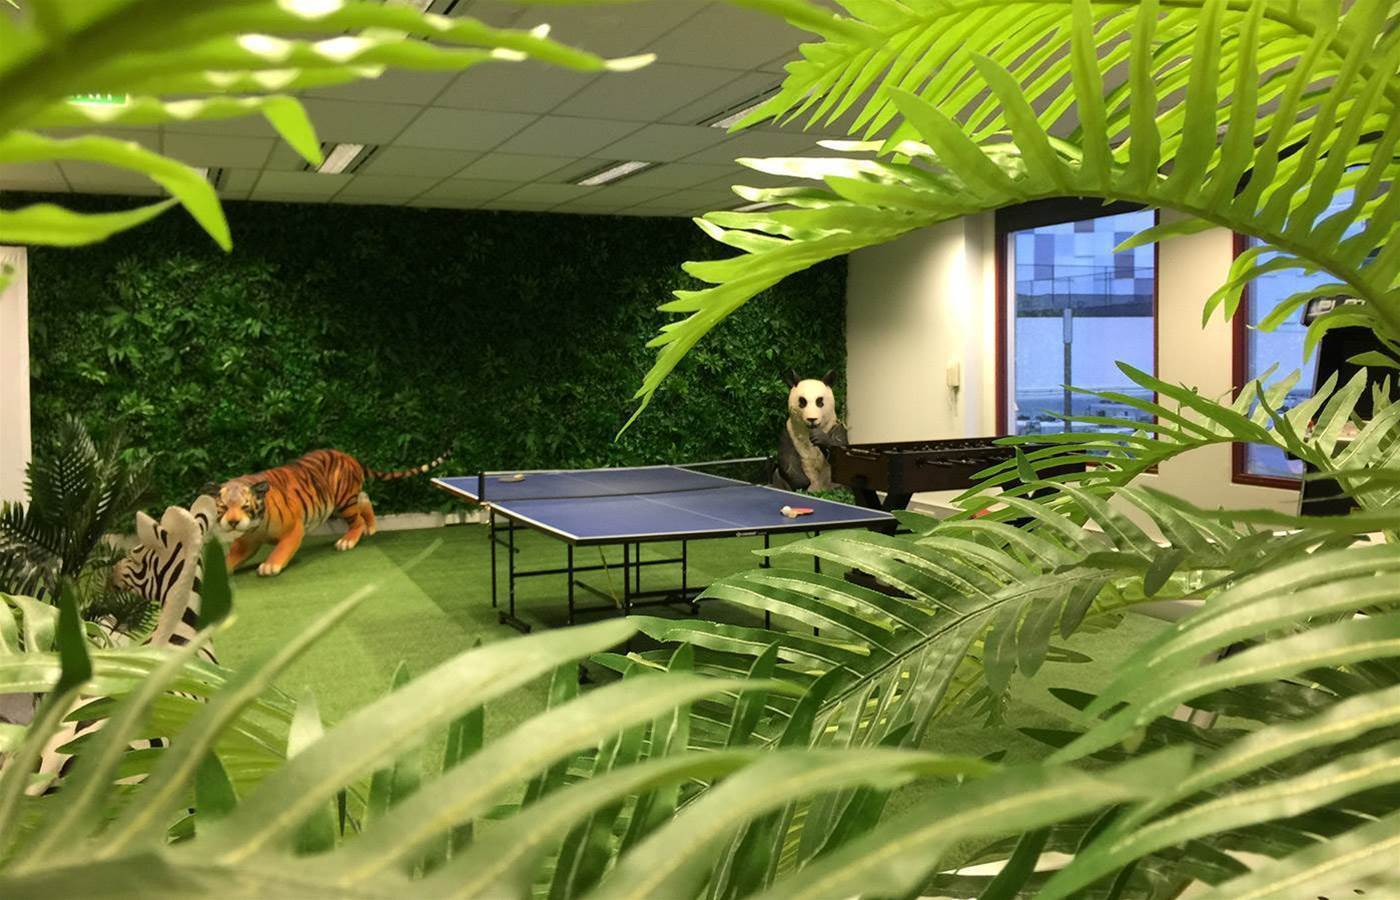 Broadband Solutions cofounder launches Jungle-themed workspace